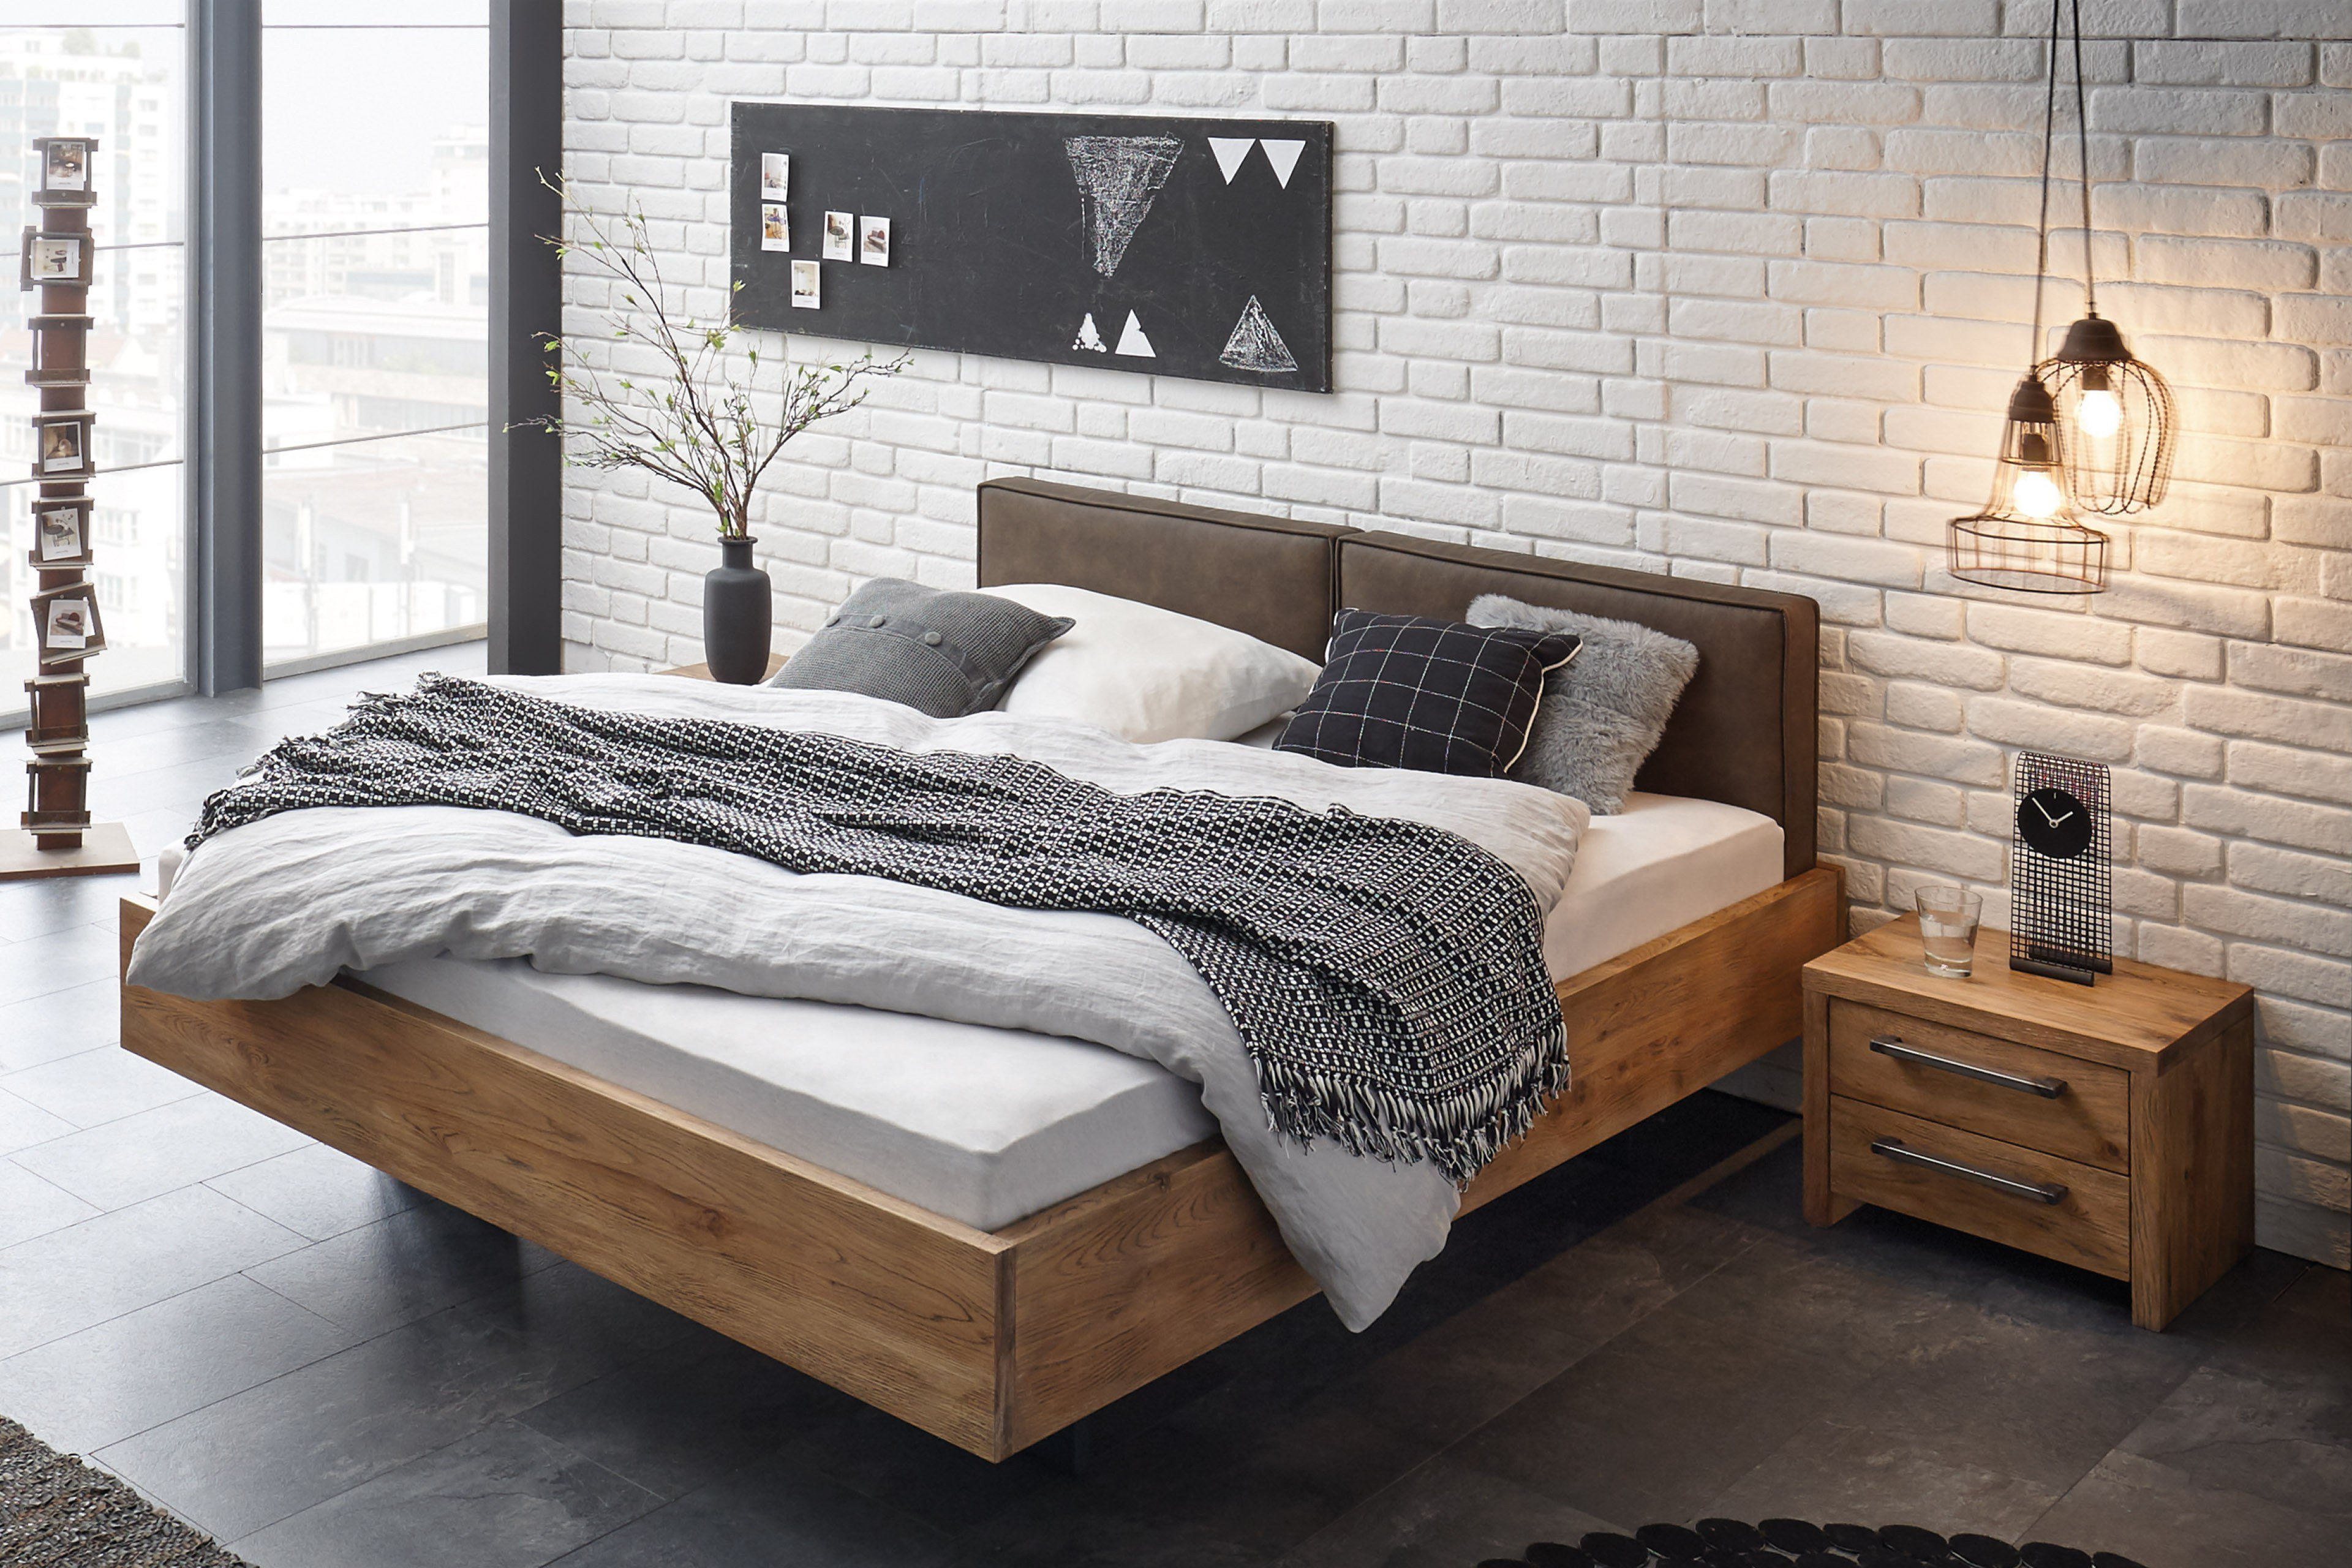 hasena oak vintage bett vilo wildeiche m bel letz ihr online shop. Black Bedroom Furniture Sets. Home Design Ideas